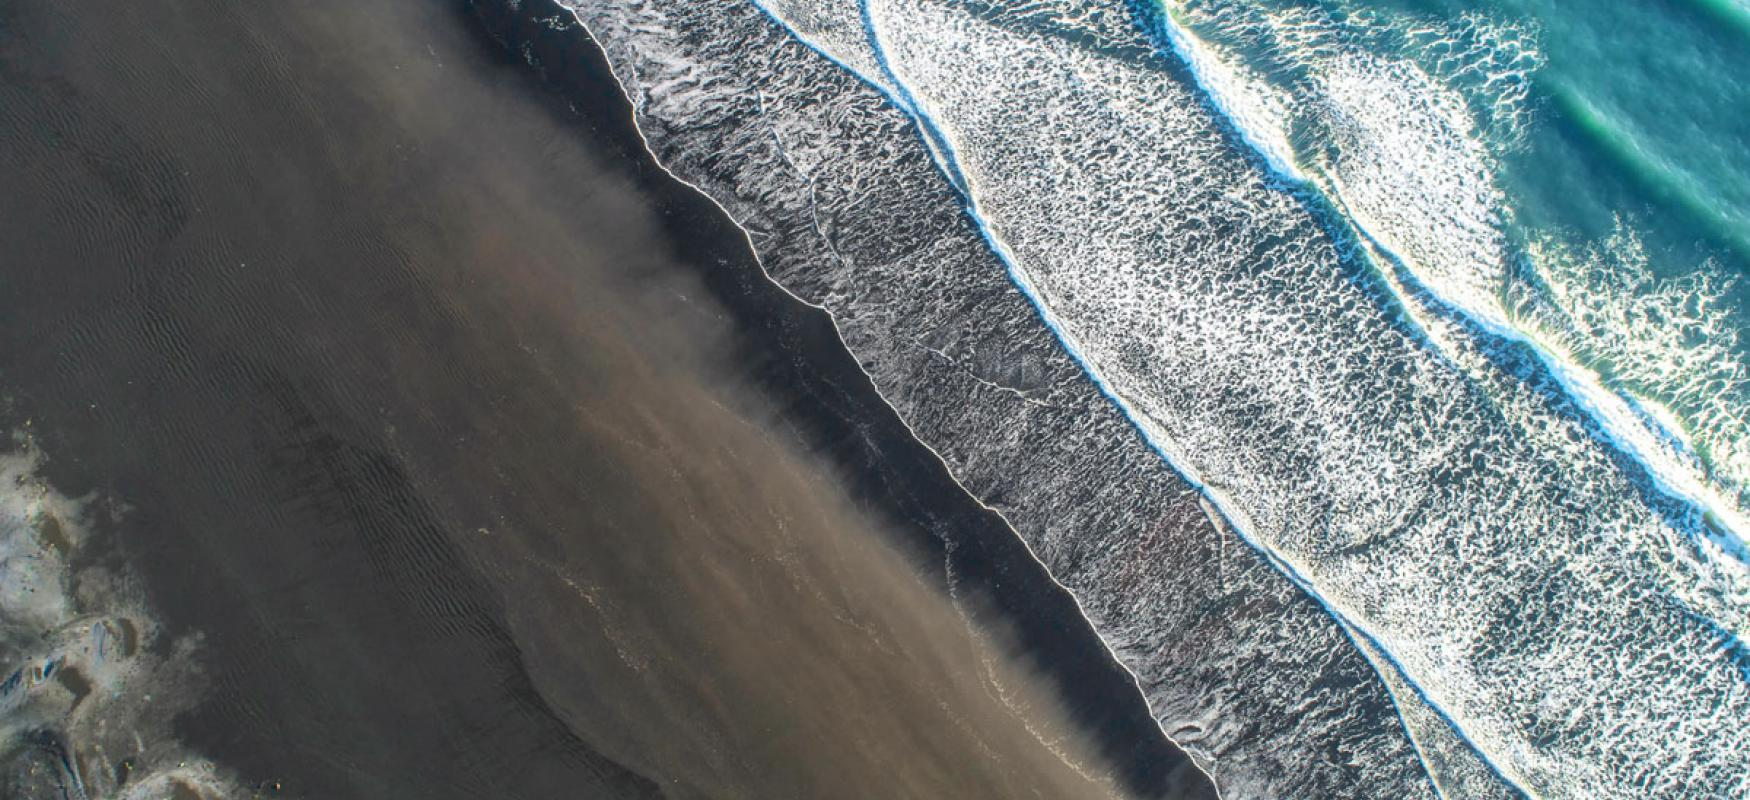 Areal view of waves washing in on a beach